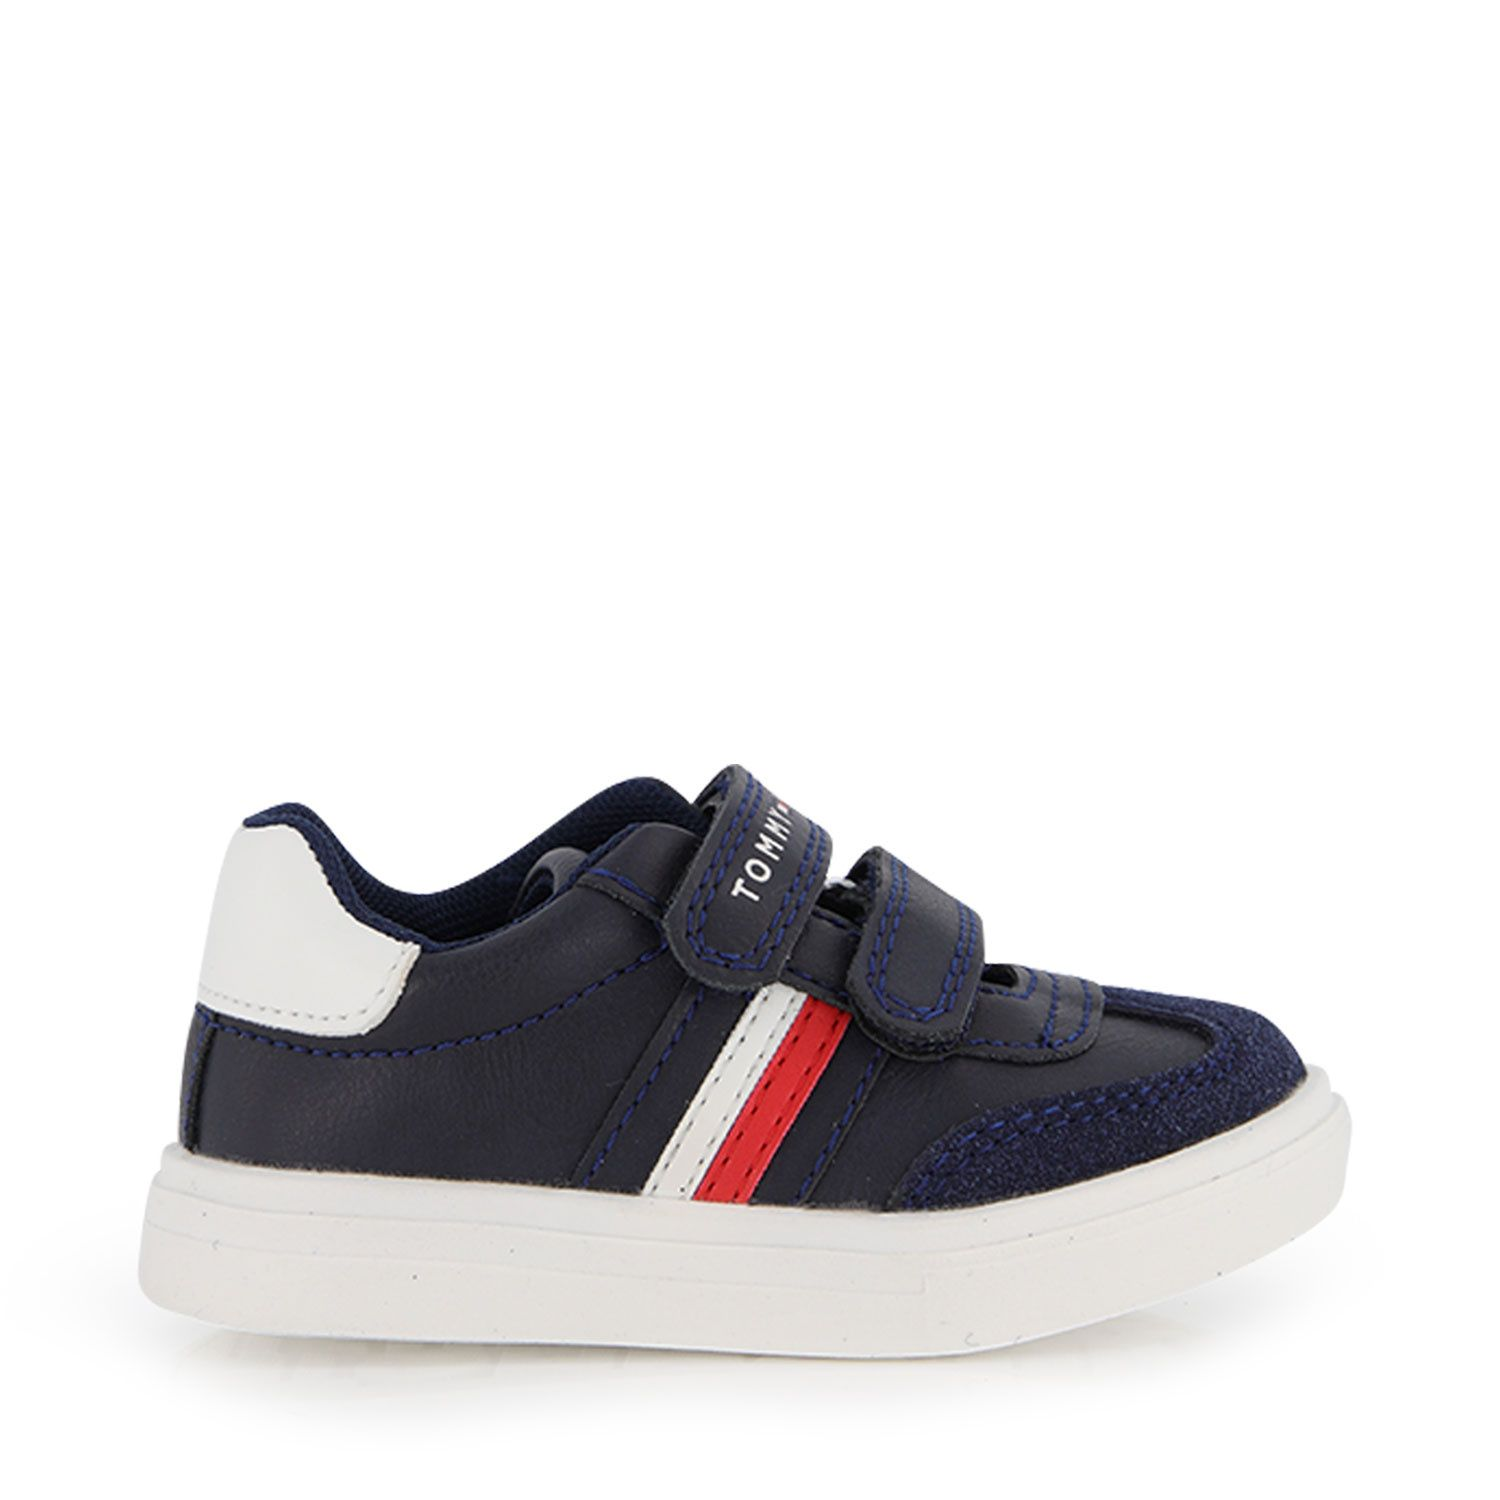 Picture of Tommy Hilfiger 30903 kids sneakers navy